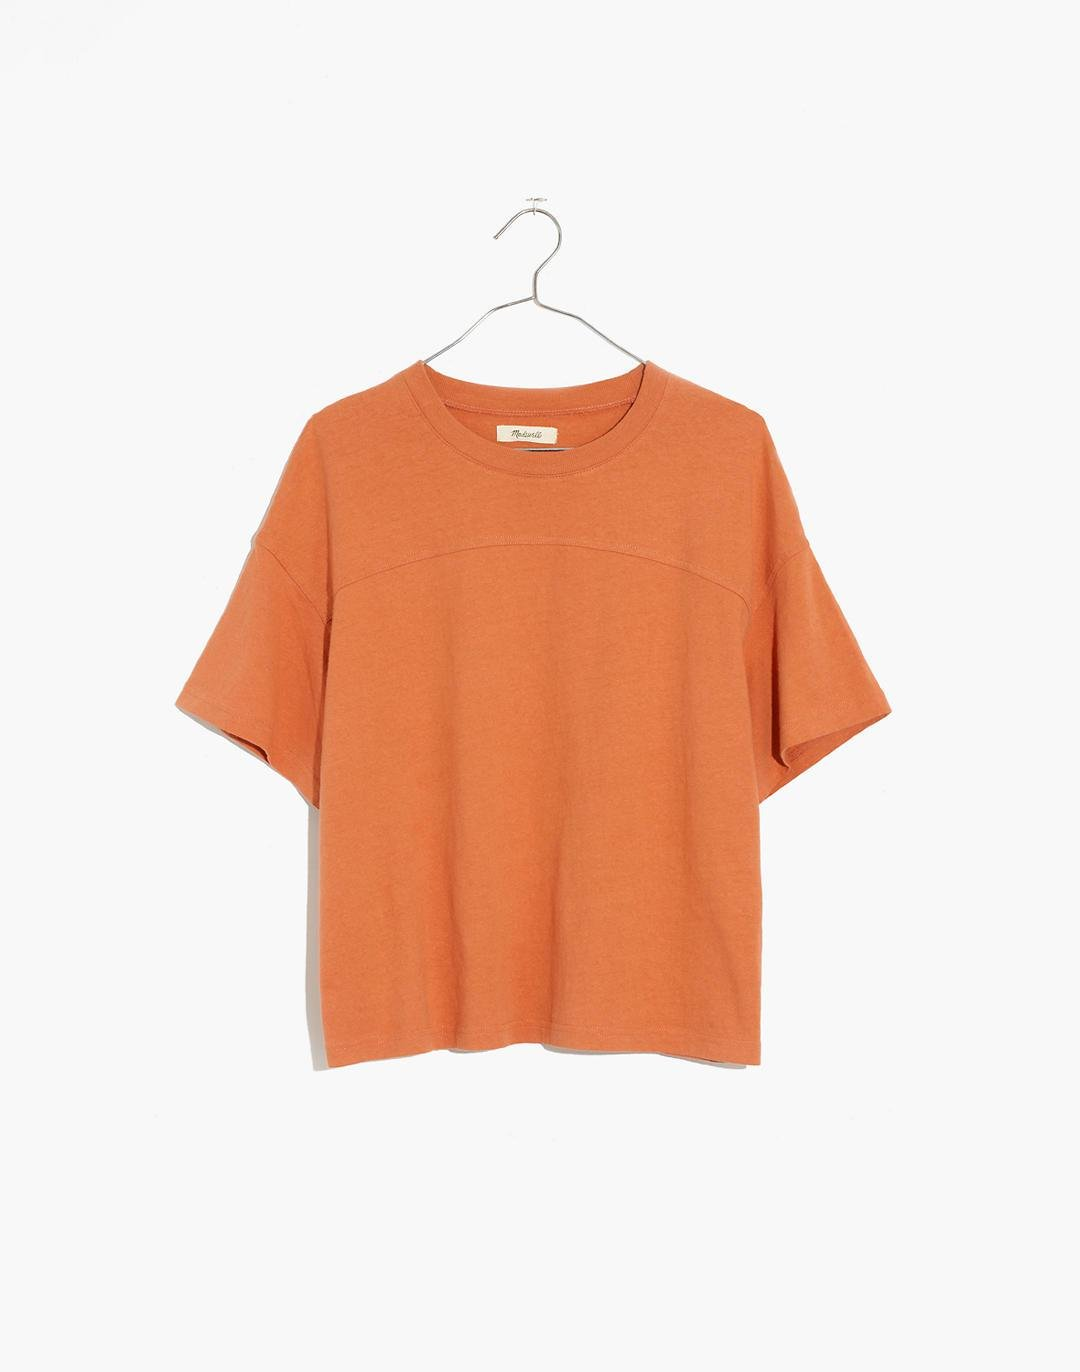 (Re)sourced BioFibre™ Seamed Tee